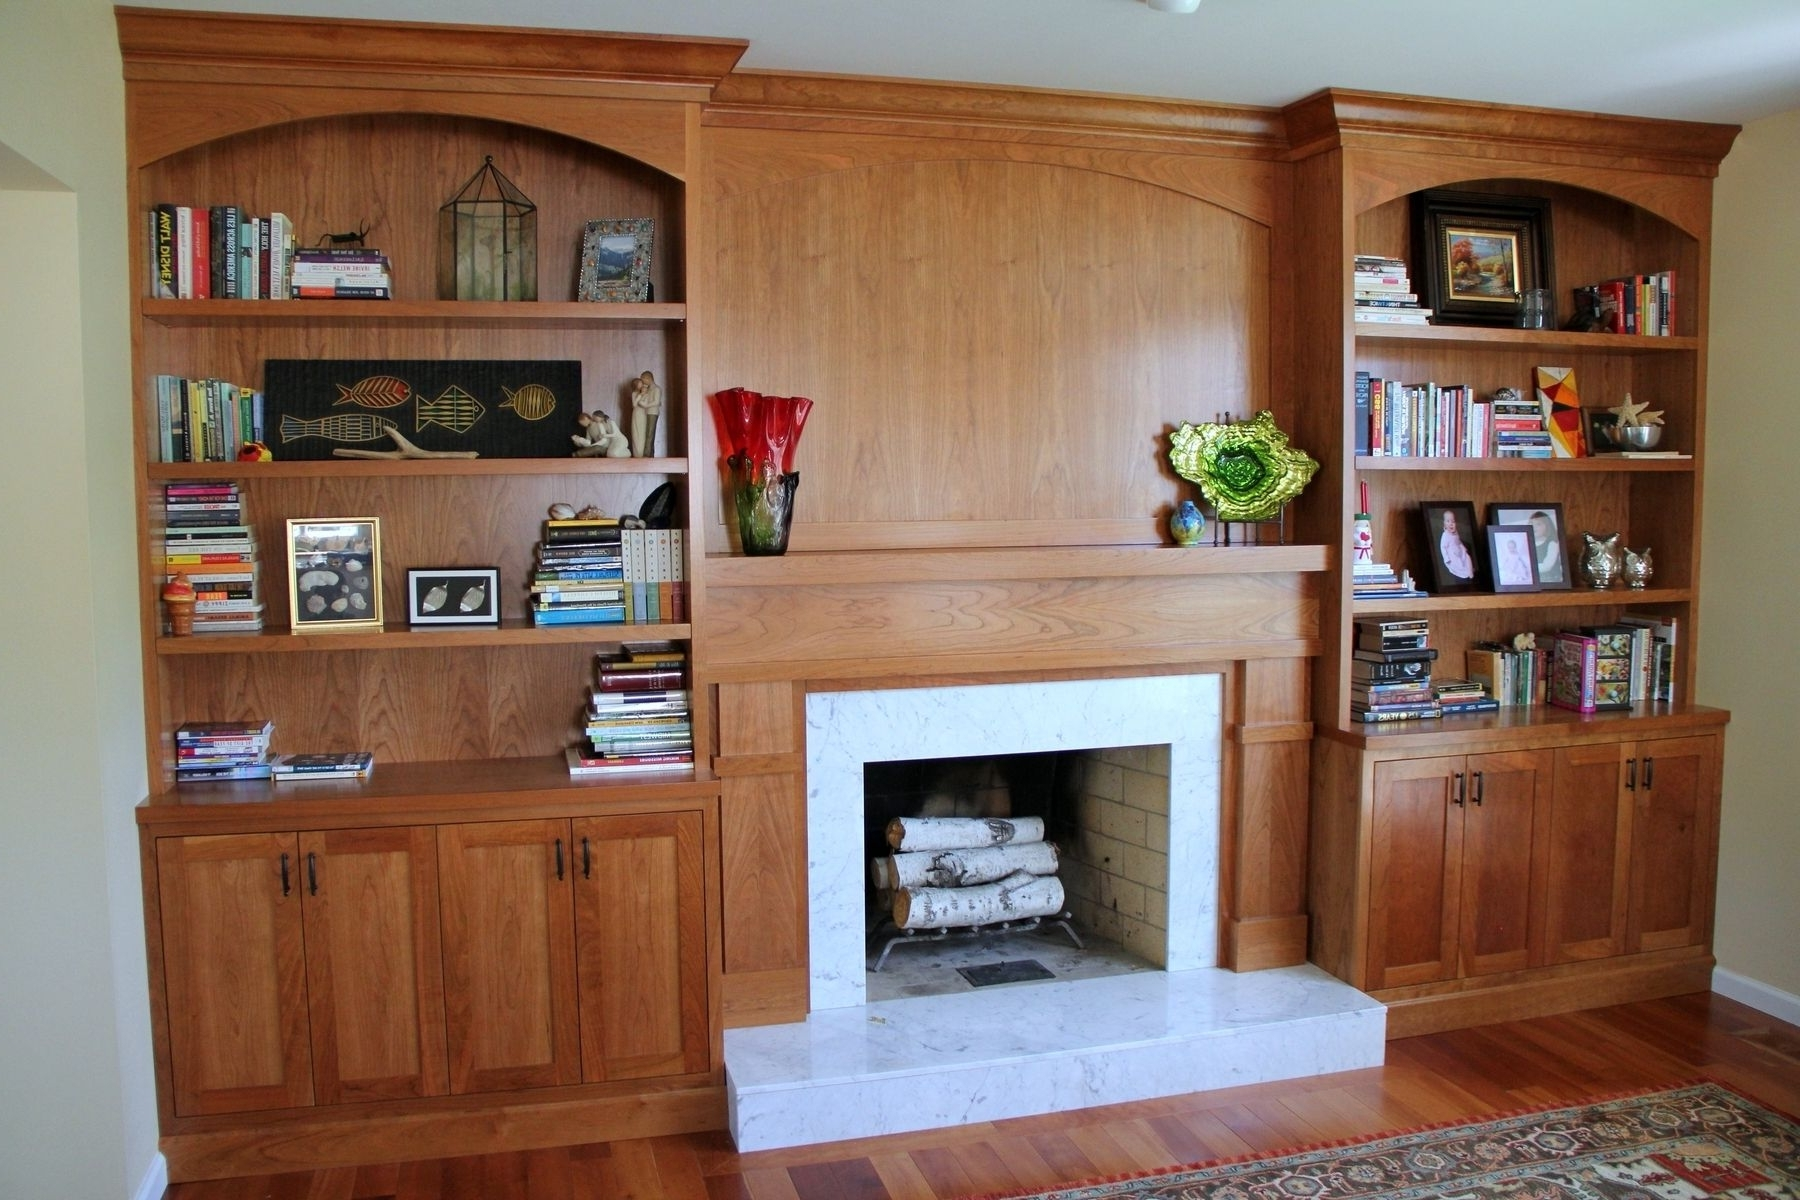 Most Popular Wall Units: Glamorous Built In Bookcase Kit Wood Bookcase Kits With Regard To Built In Bookshelves Kits (View 7 of 15)